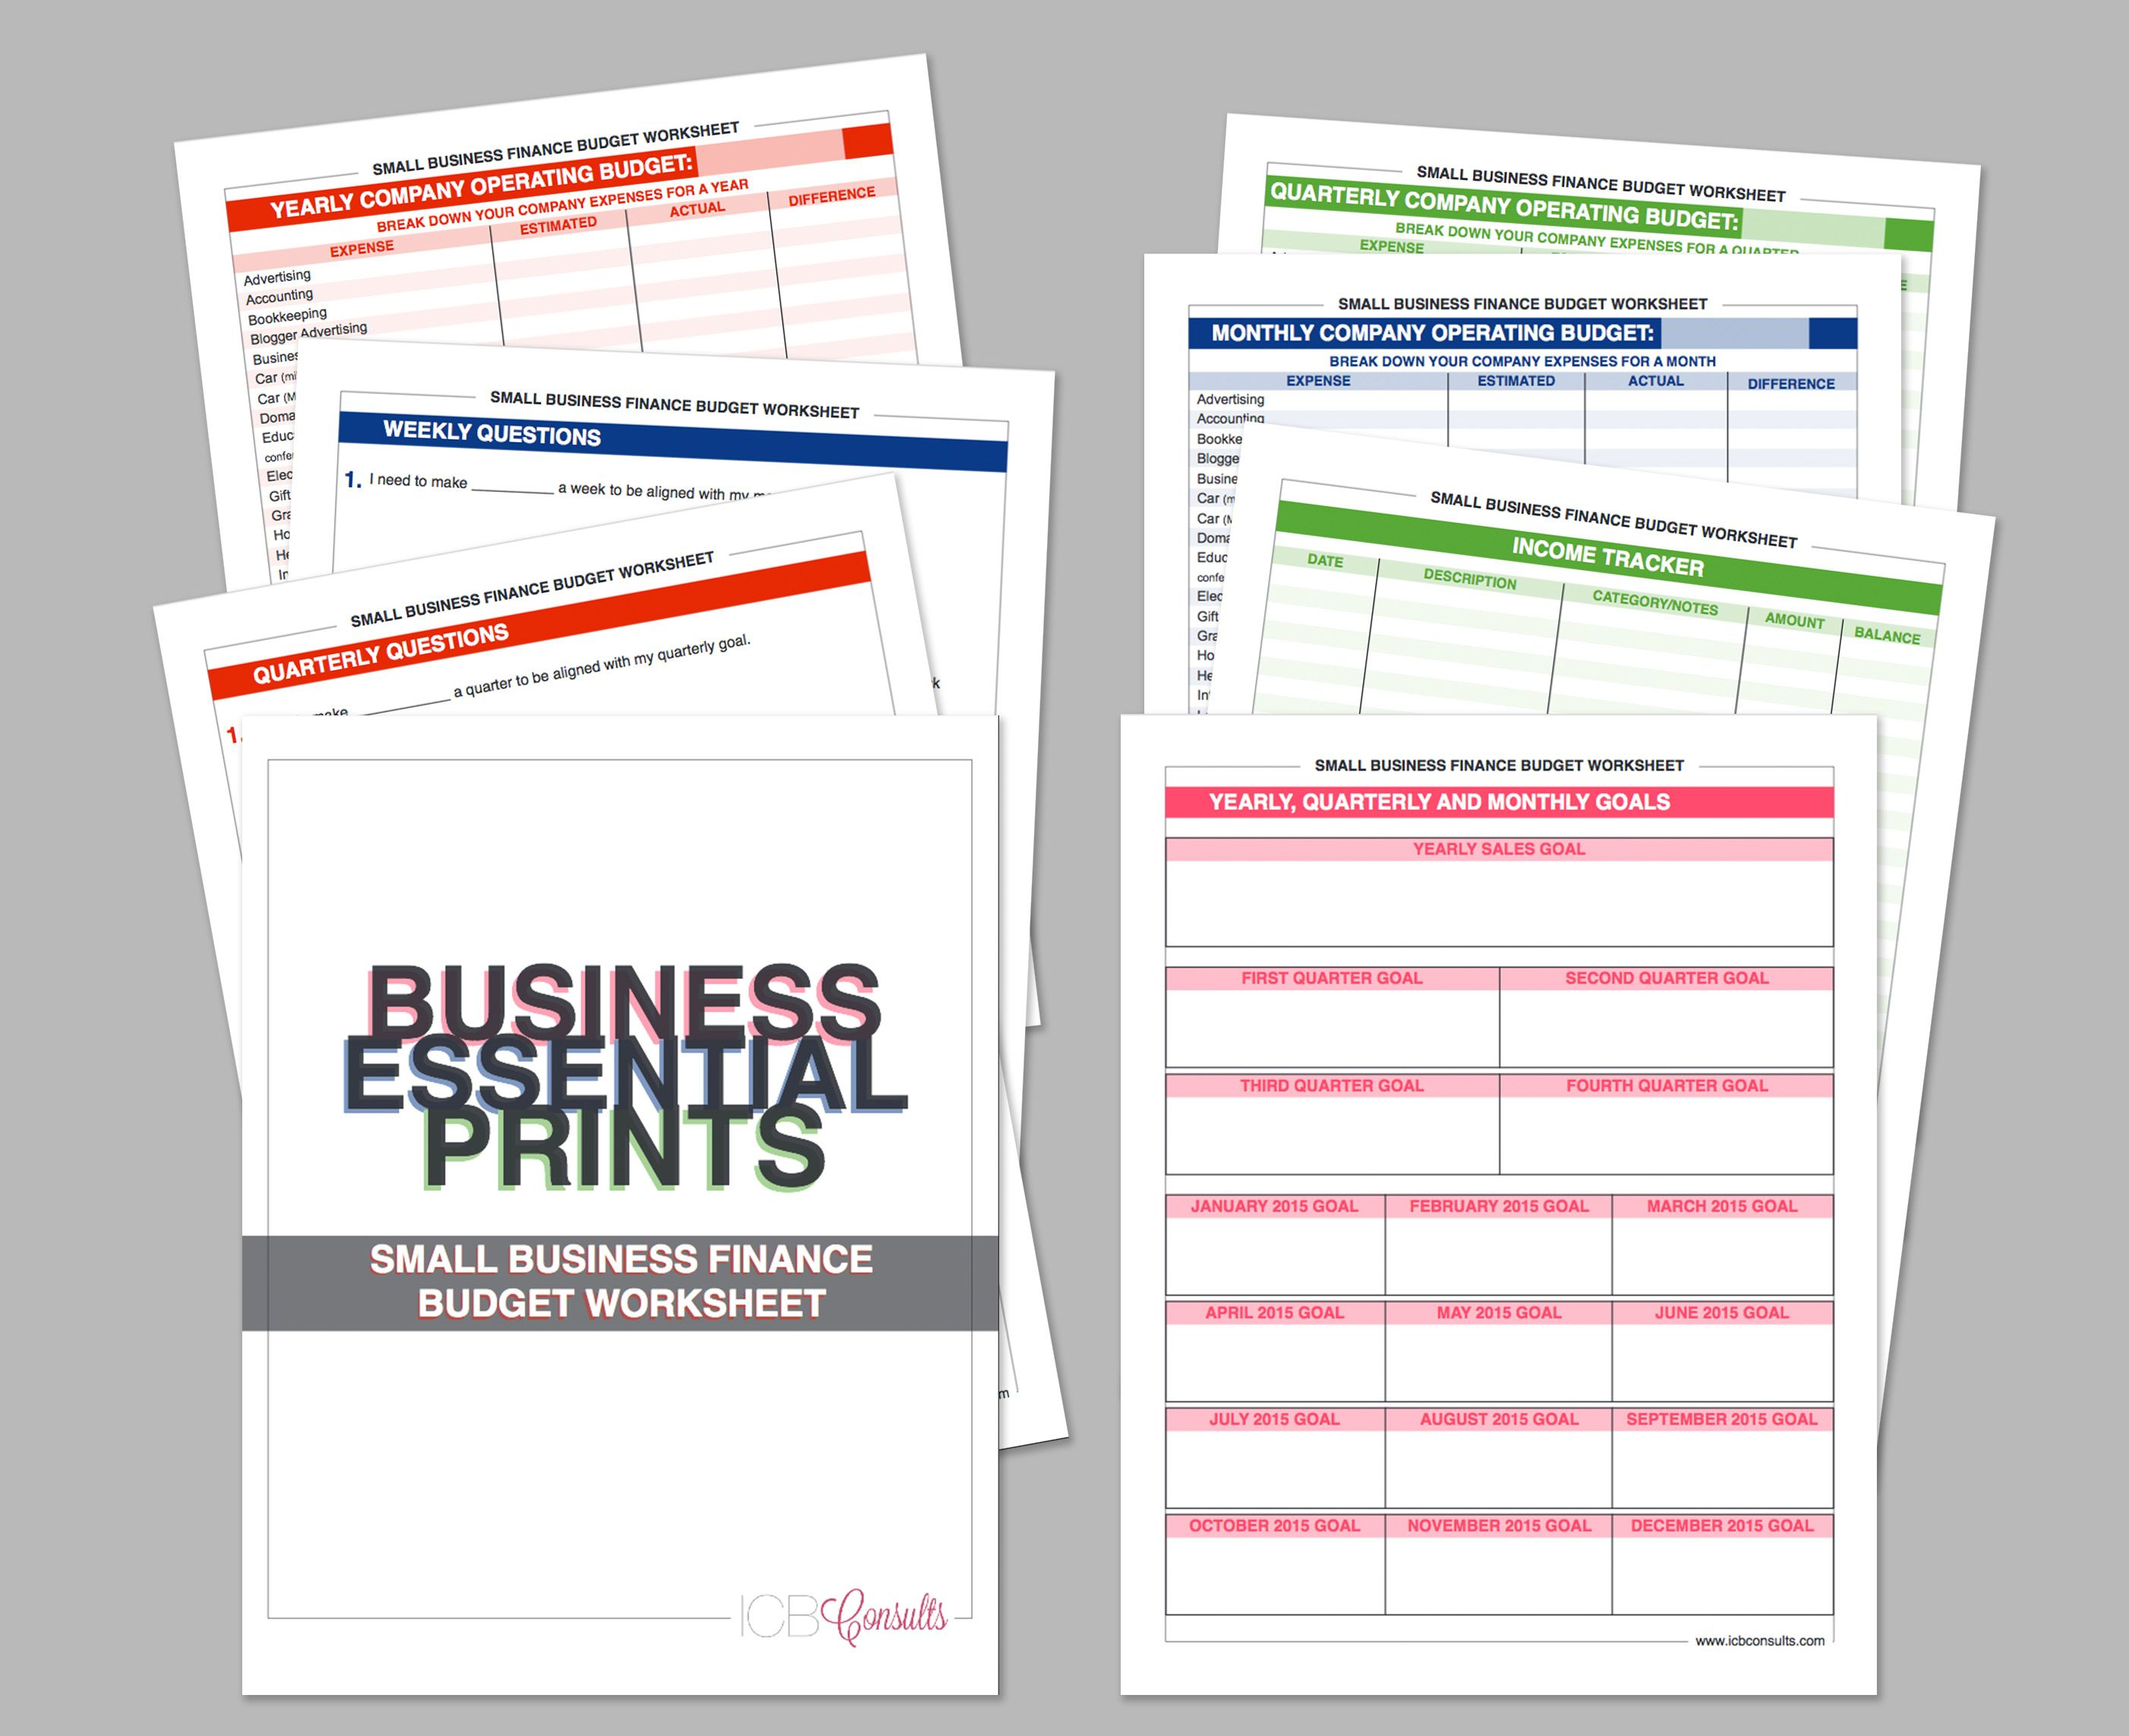 Small Business Finance Budget Worksheet Questionnaire